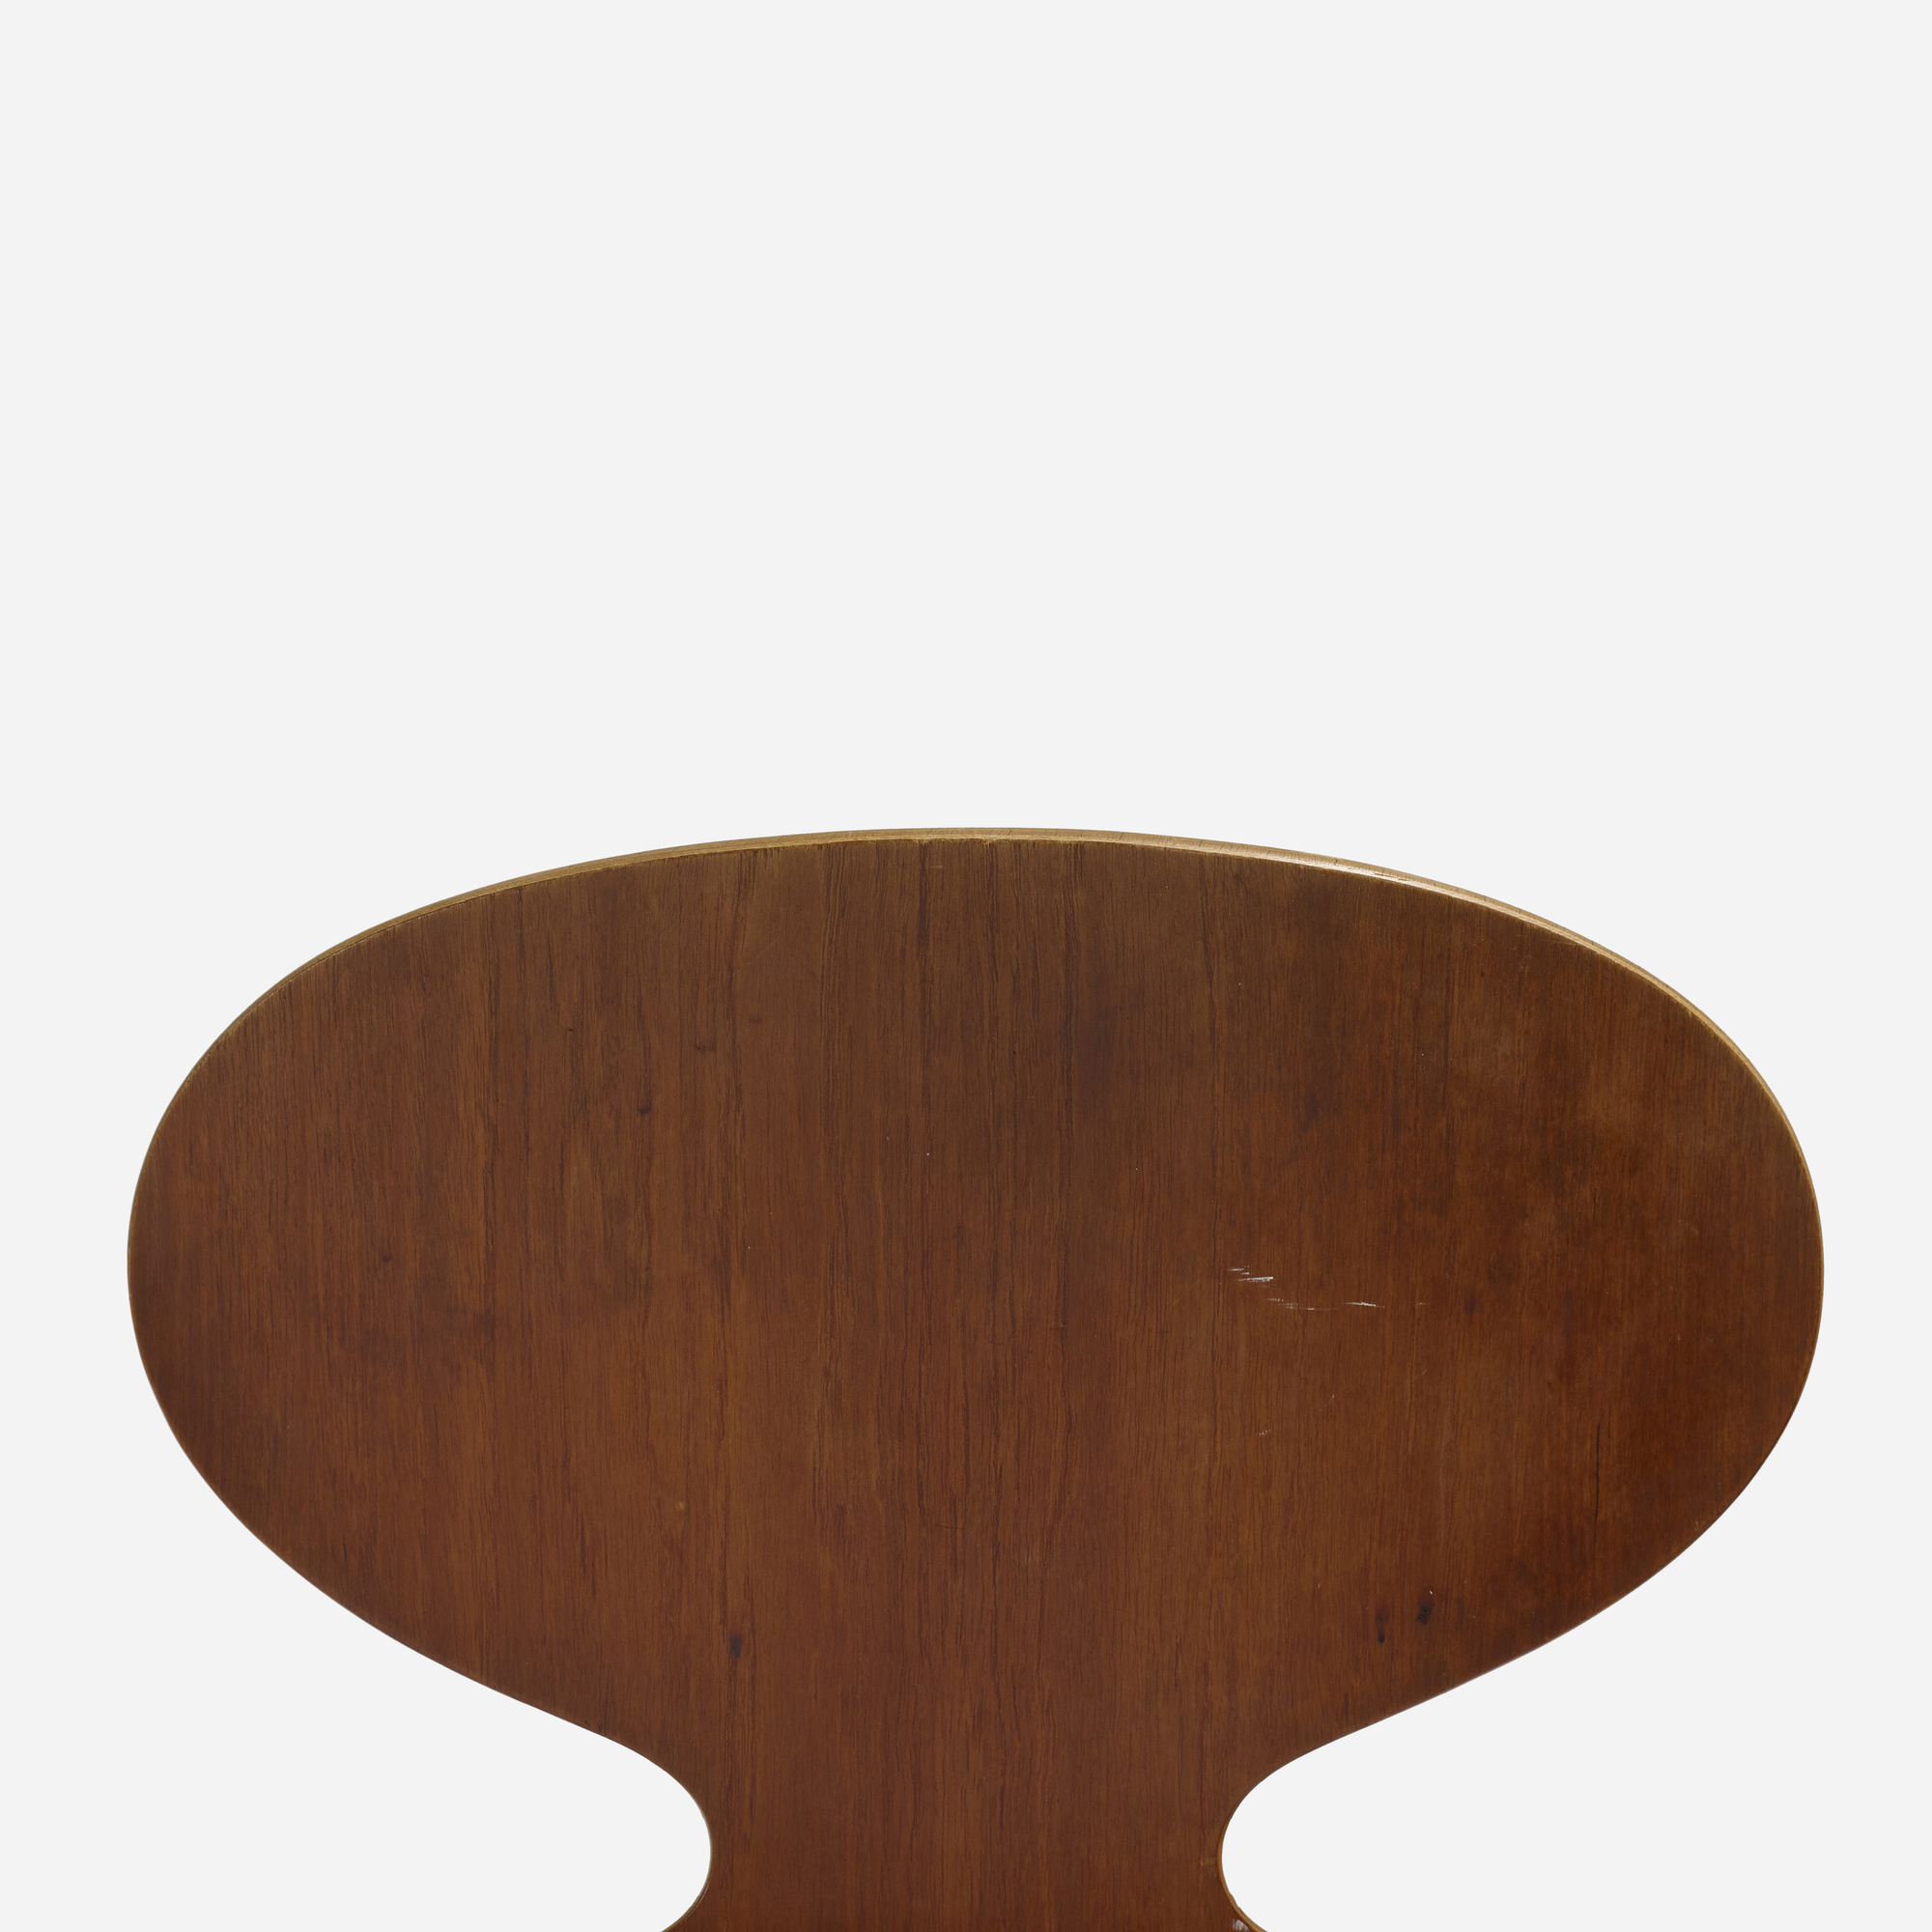 232: Arne Jacobsen / Ant dining chair (3 of 4)